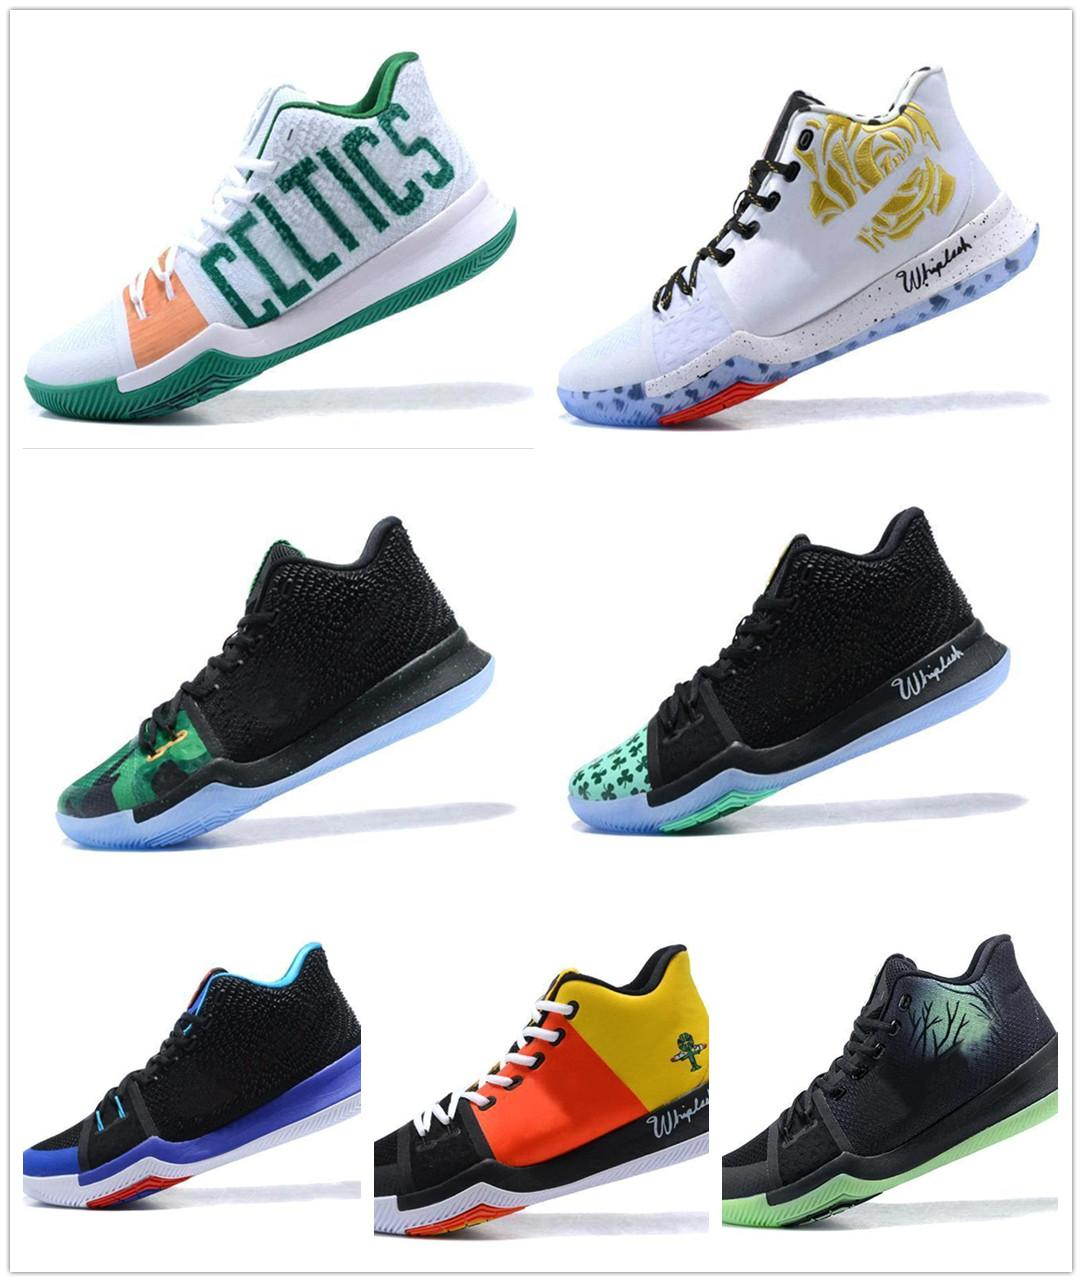 best service 21fb3 2efa0 High Quality Kyrie #3 Mans Basket Shoes Classic Basketball Shoes Mamba  Mentality Signature Shoes Outdoor Sports Sneakers 11 Colors